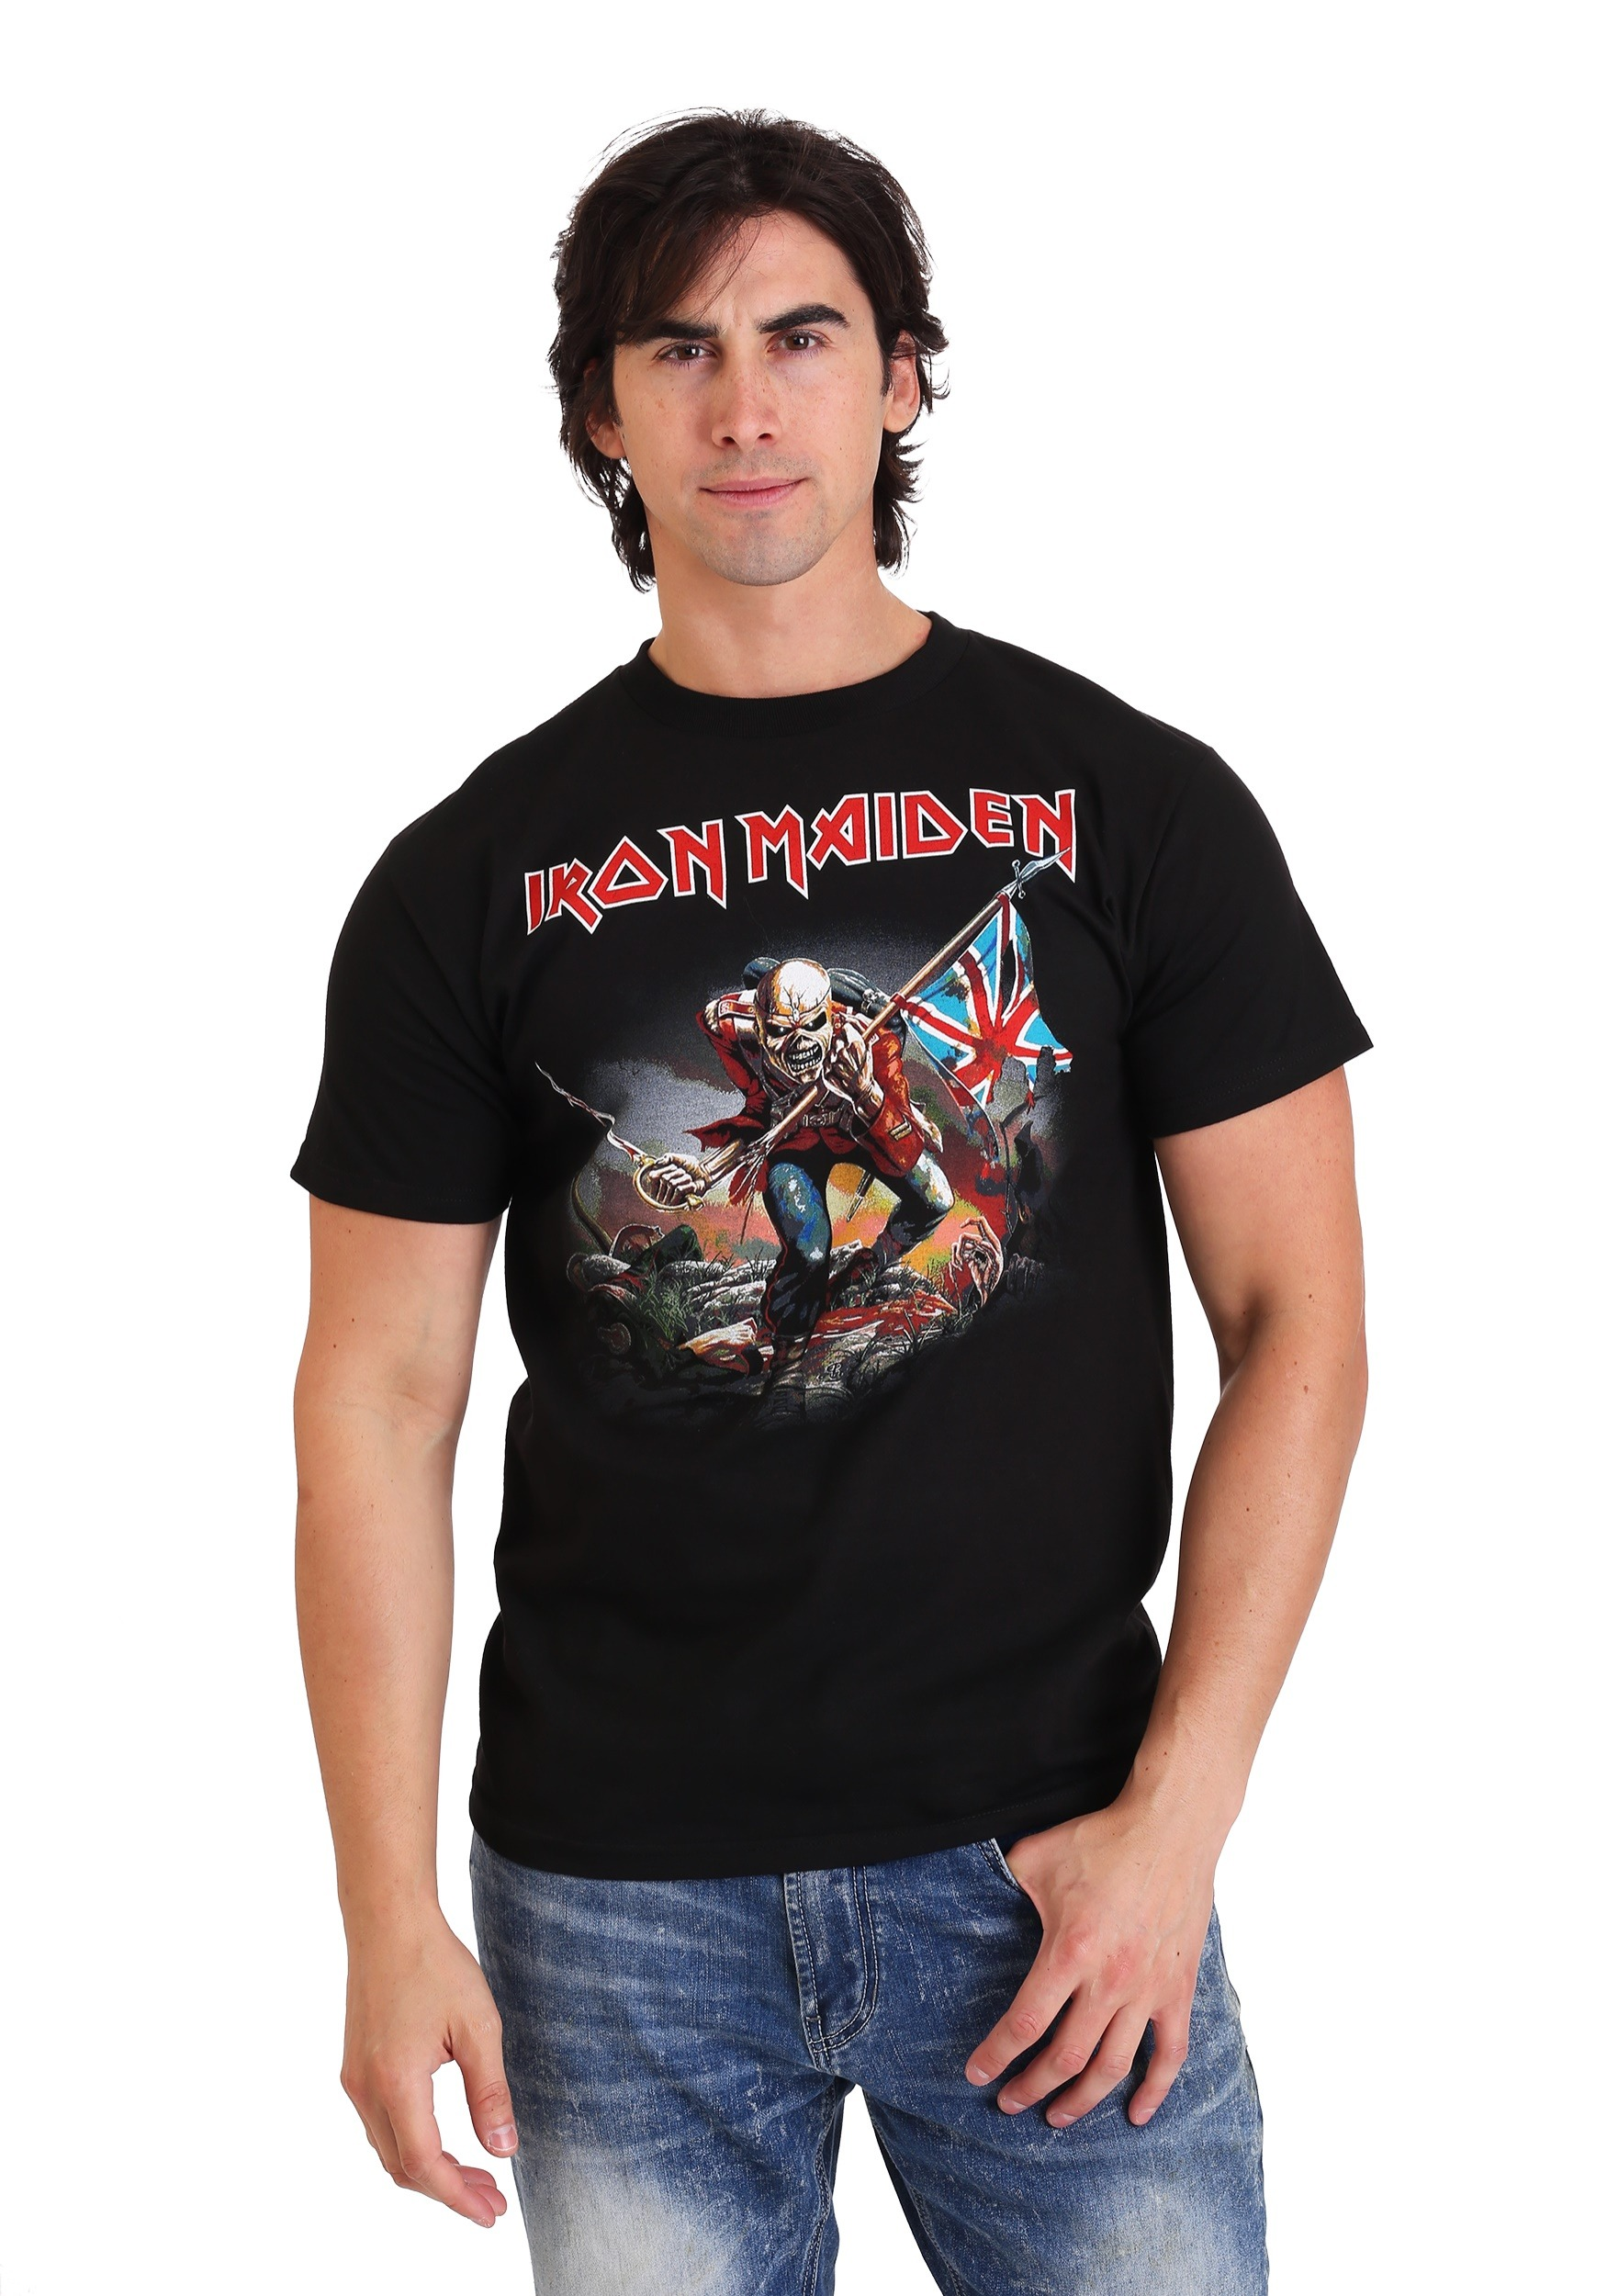 Iron Maiden The Trooper Men's Black T-Shirt